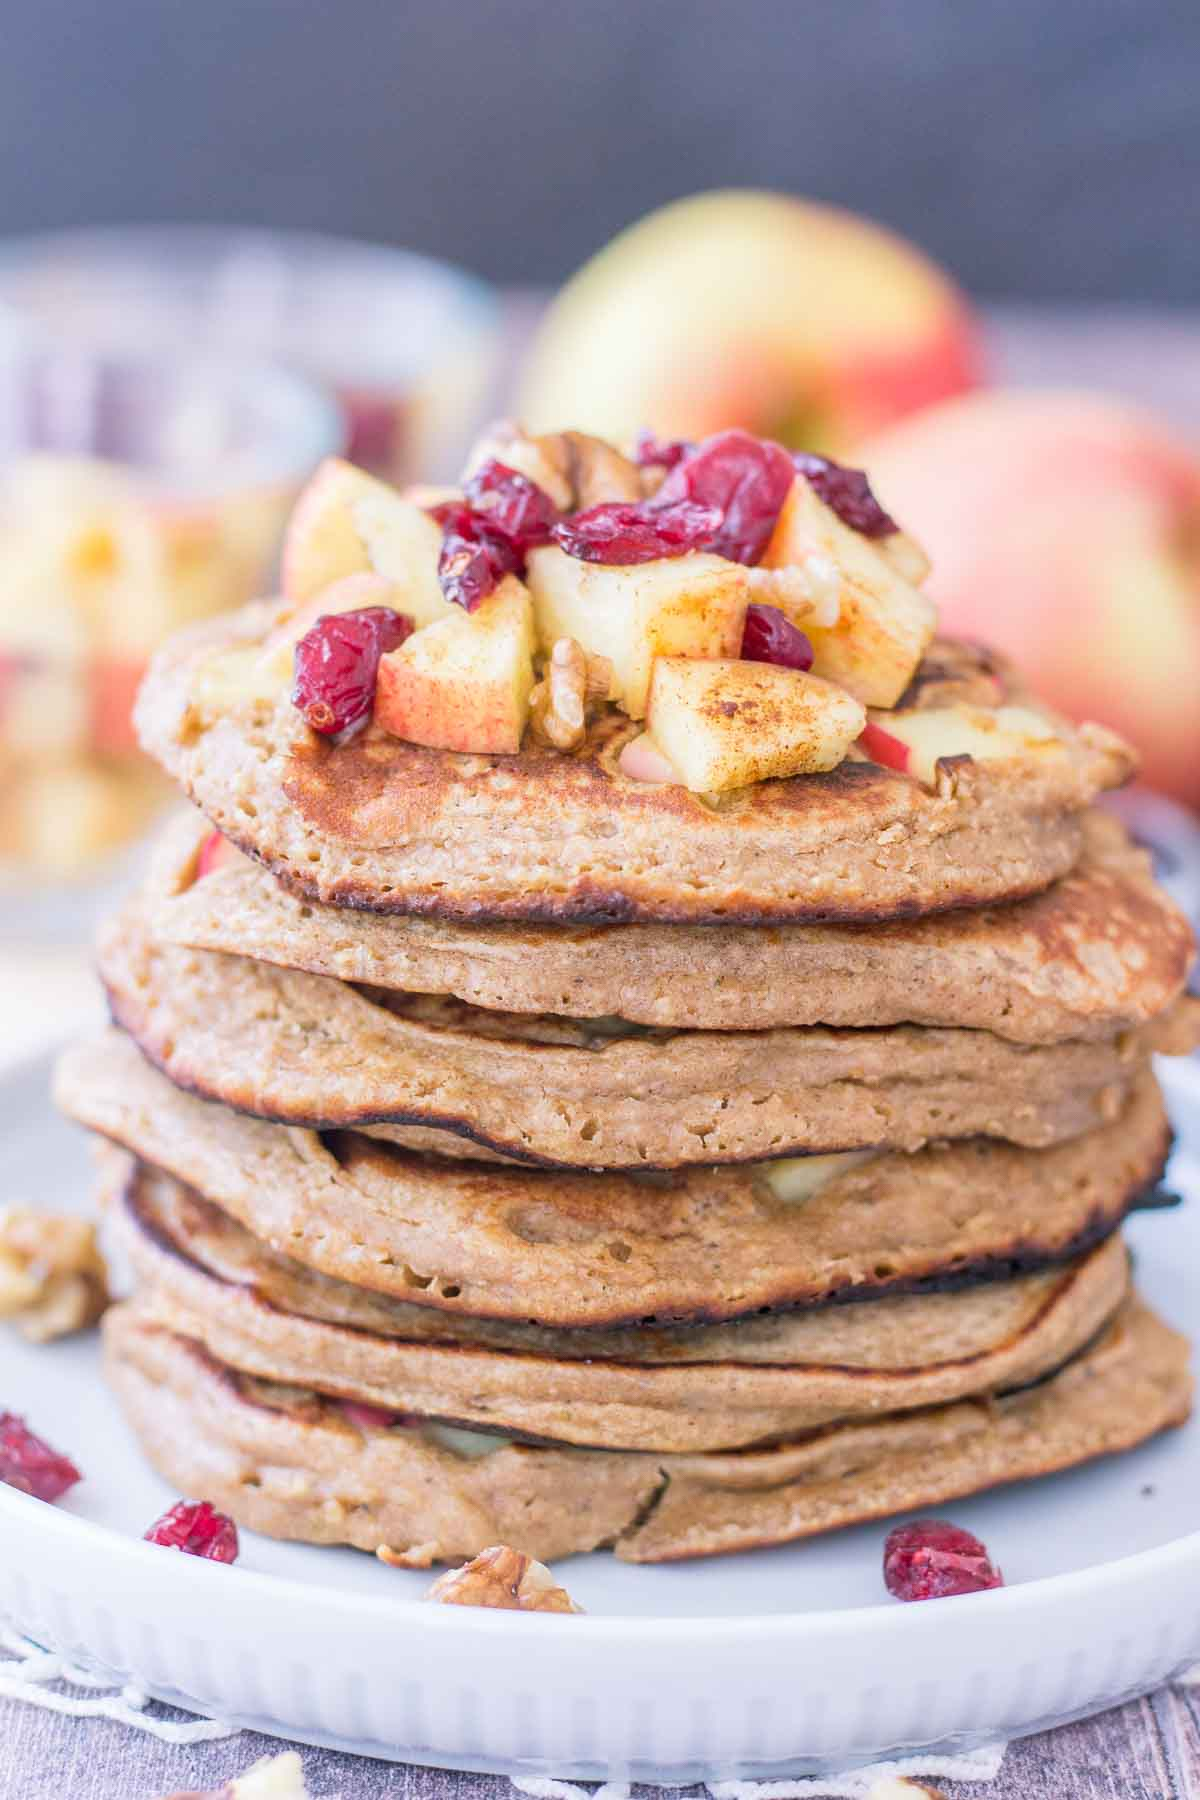 Apple Oatmeal Pancakes stacked on a plate topped with diced apples and cranberries